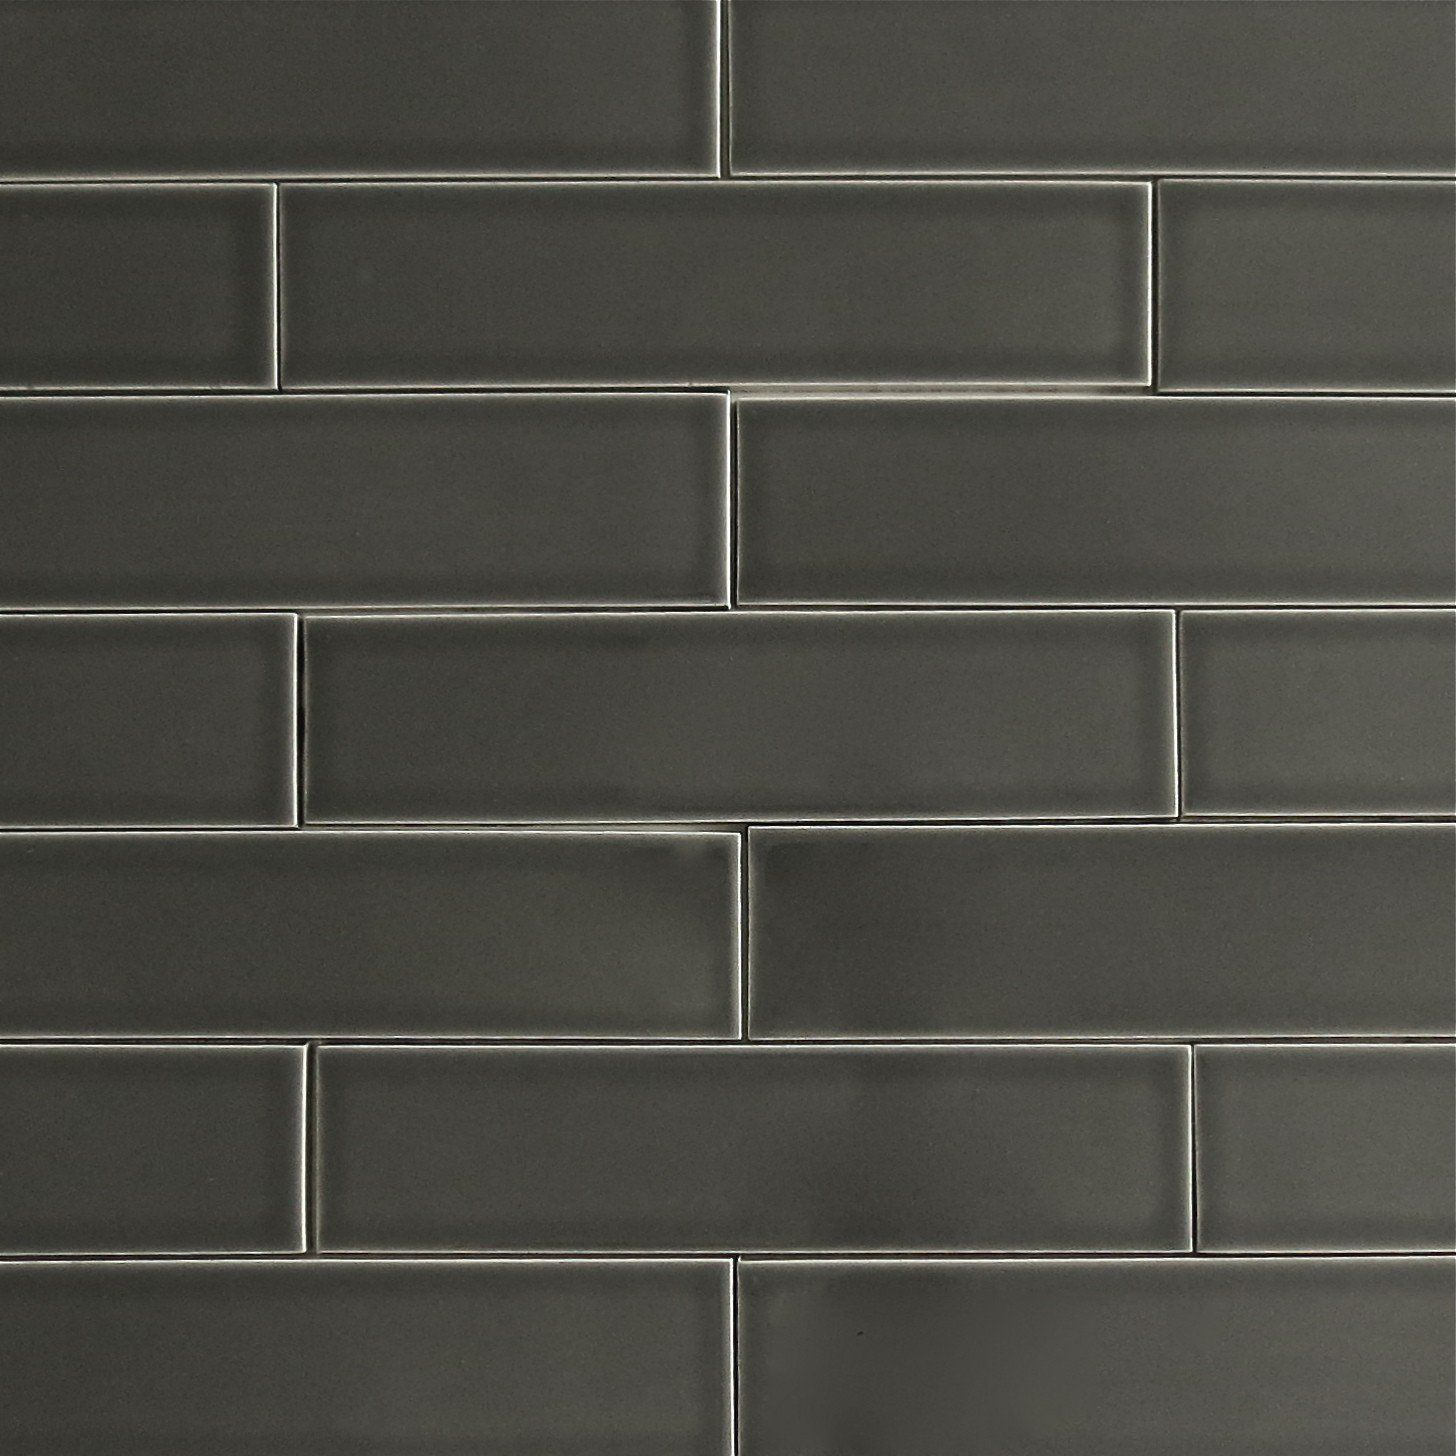 - Clayhaus 2x8 Carbon - Dark Gray Ceramic Tile -This Tile Is Well